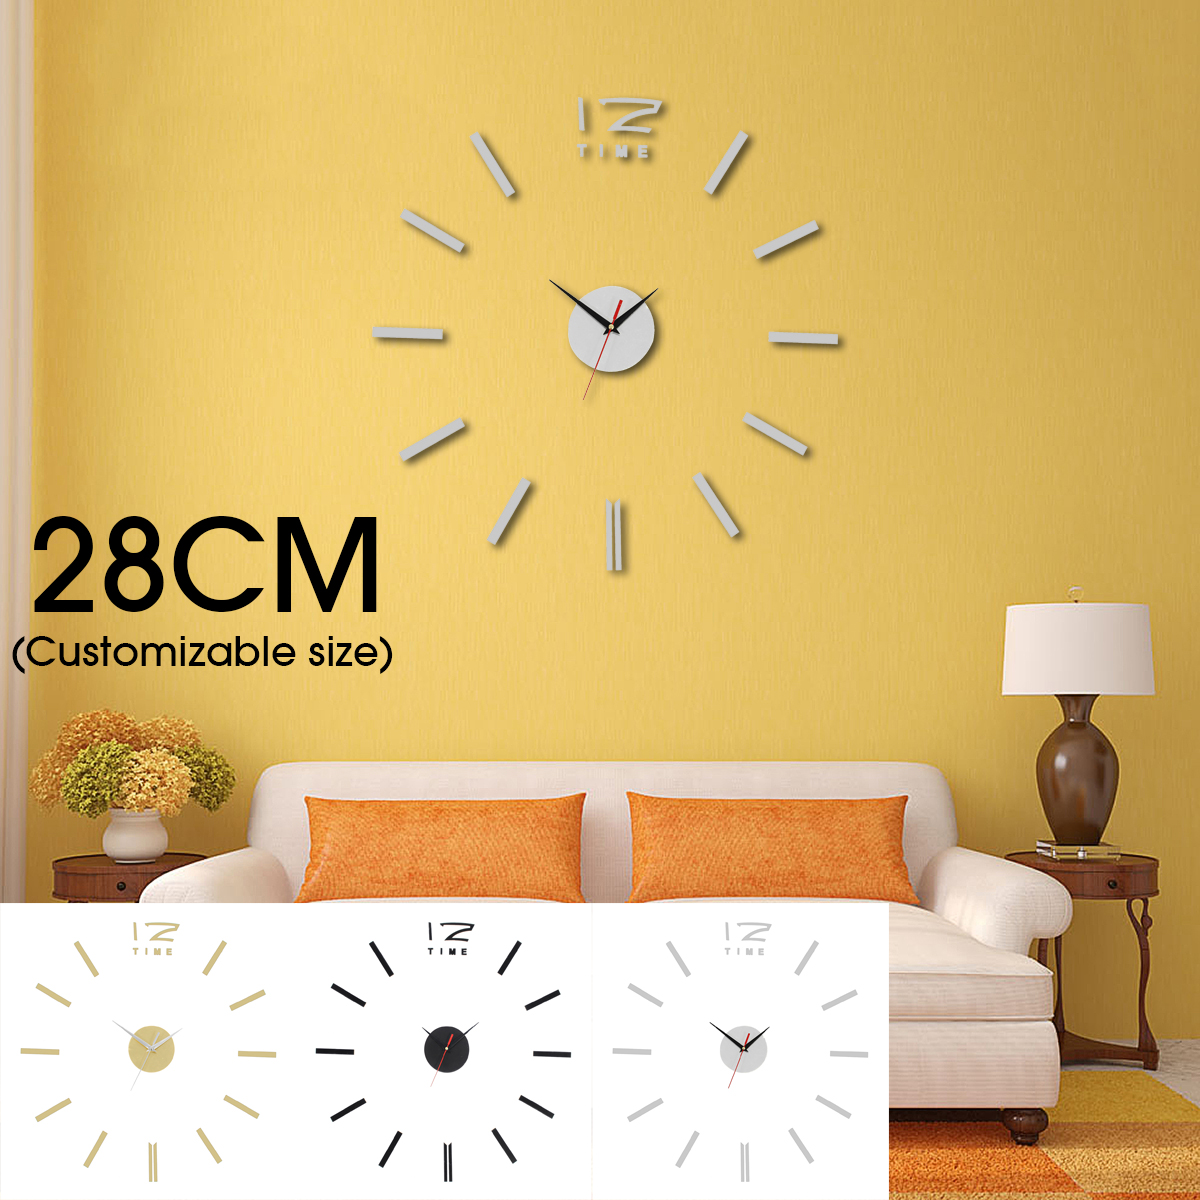 3D DIY Wall Clock Mirror Surface Clock Sticker Modern Home Office Decor Art Craft Gifts